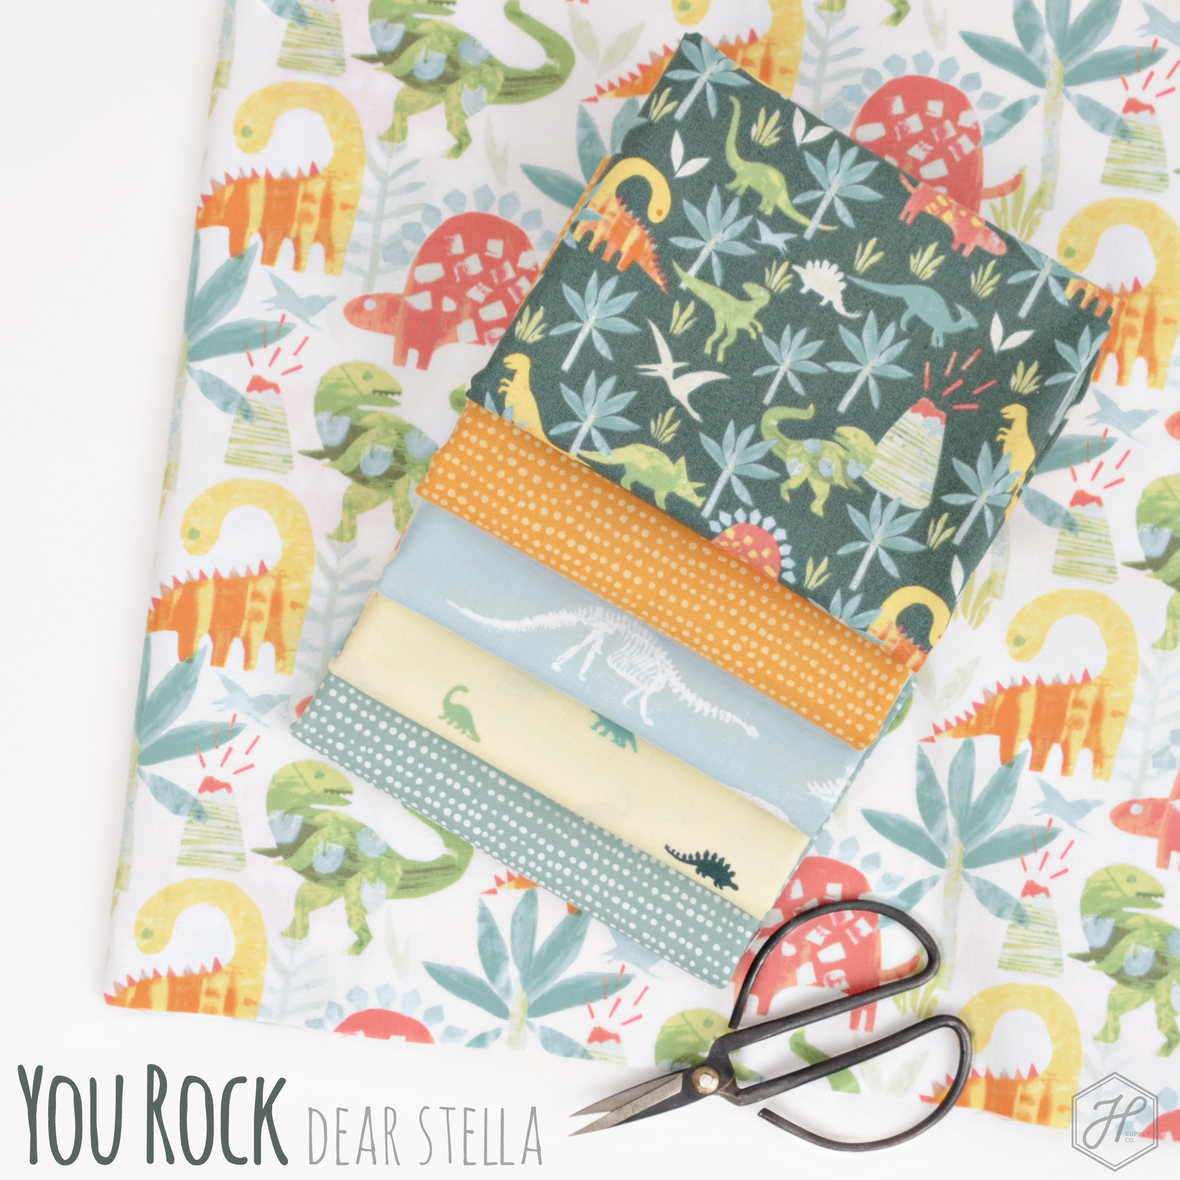 You Rock fabric collection from Dear Stella at Hawthorne Supply Co